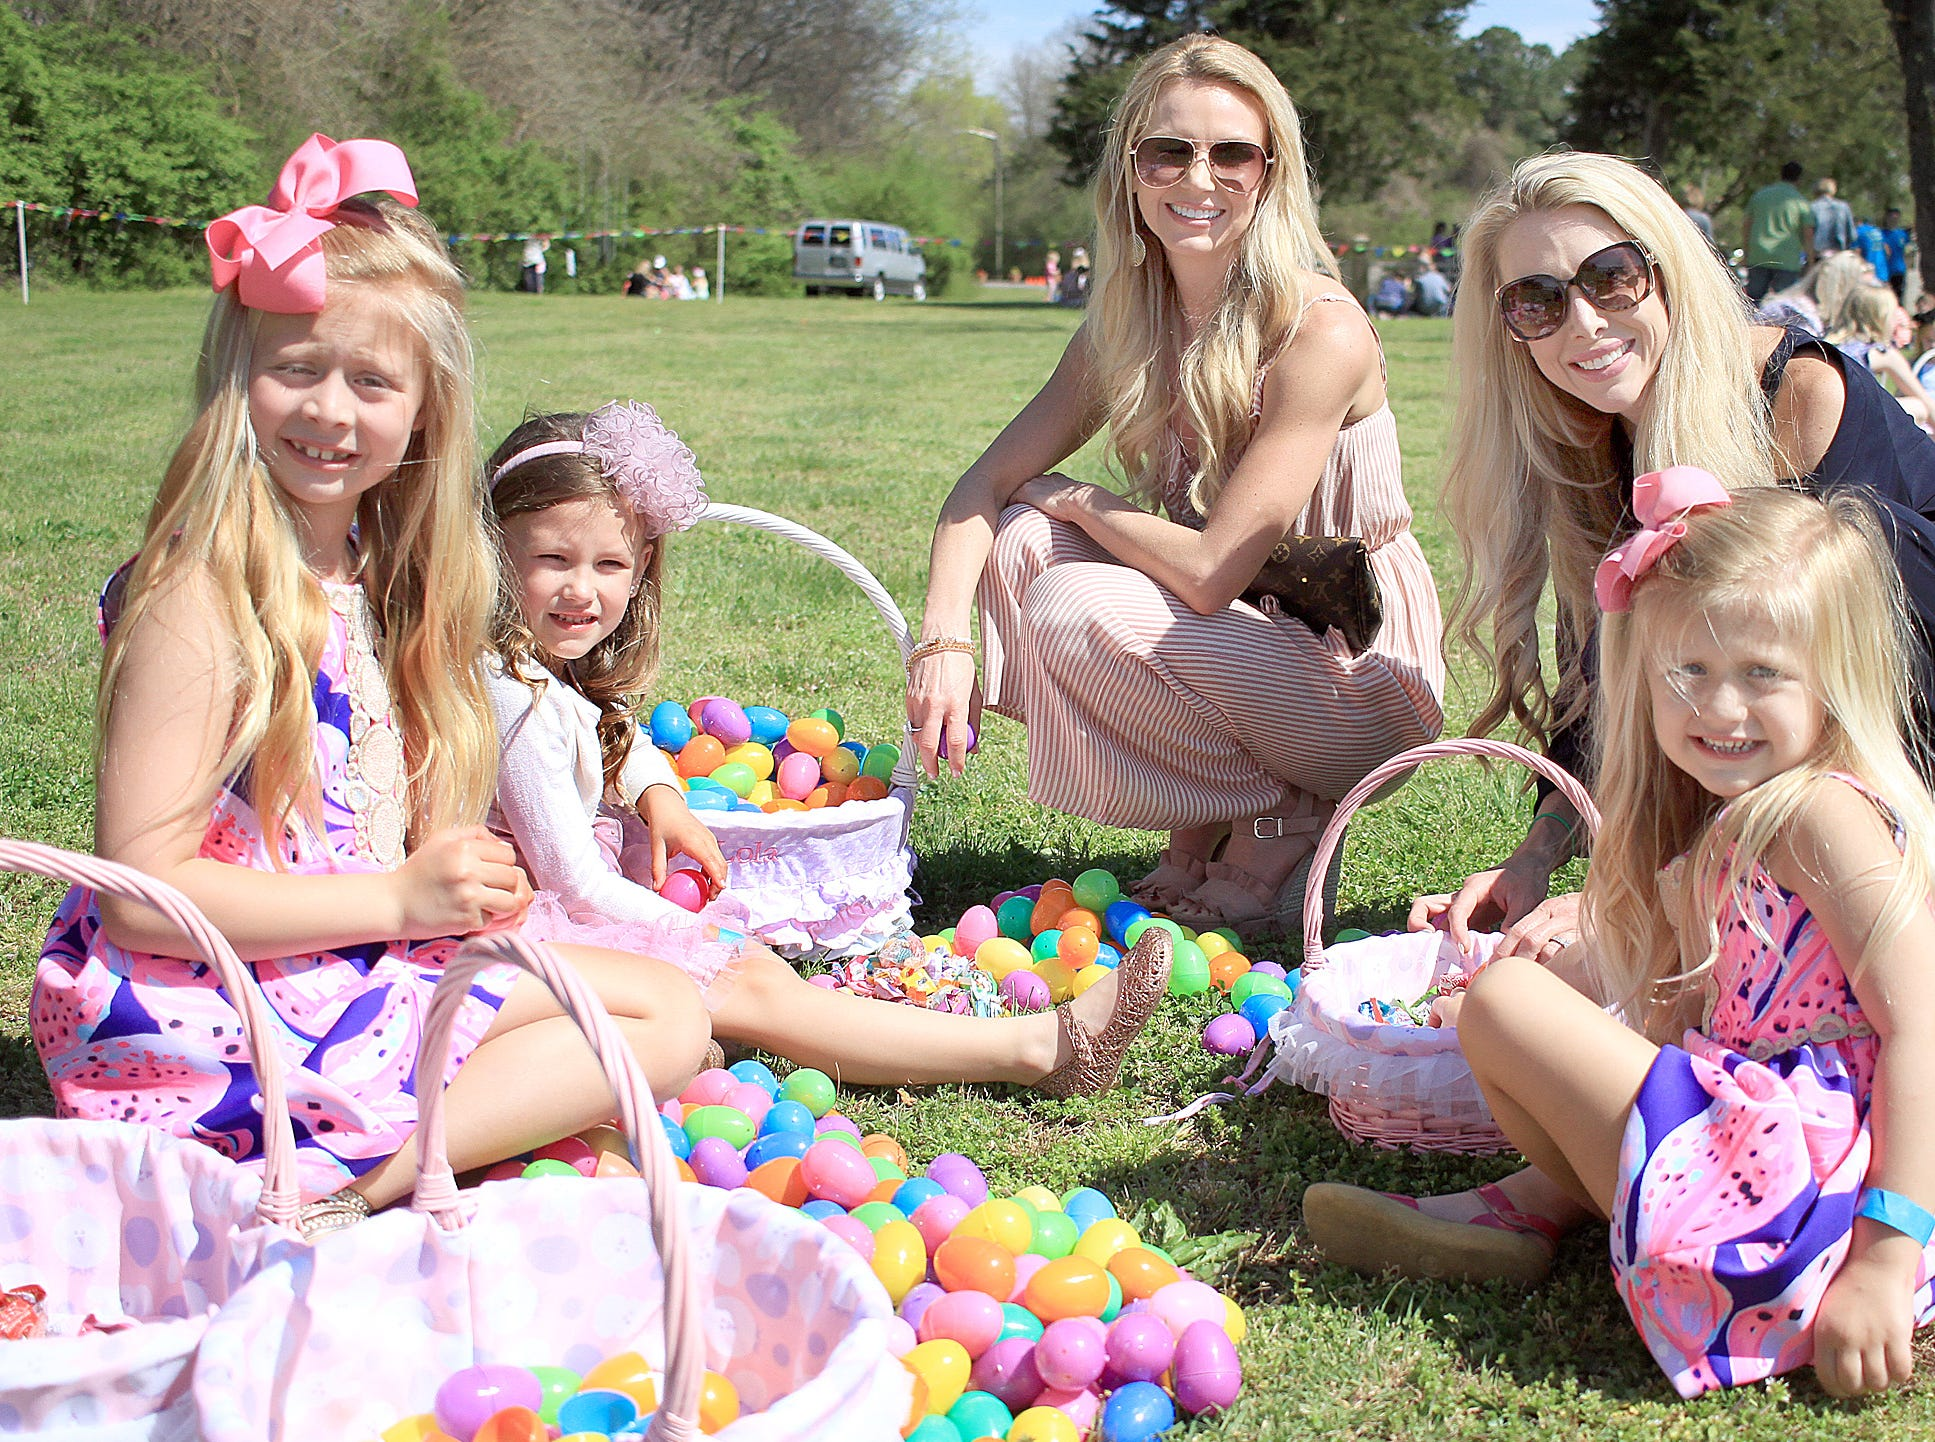 L-R Emma West, Lola Smith, Andi Smith, Jennifer West and Ella West count their eggs at Rock Castle in Hendersonville, TN on Saturday, April 6, 2019.